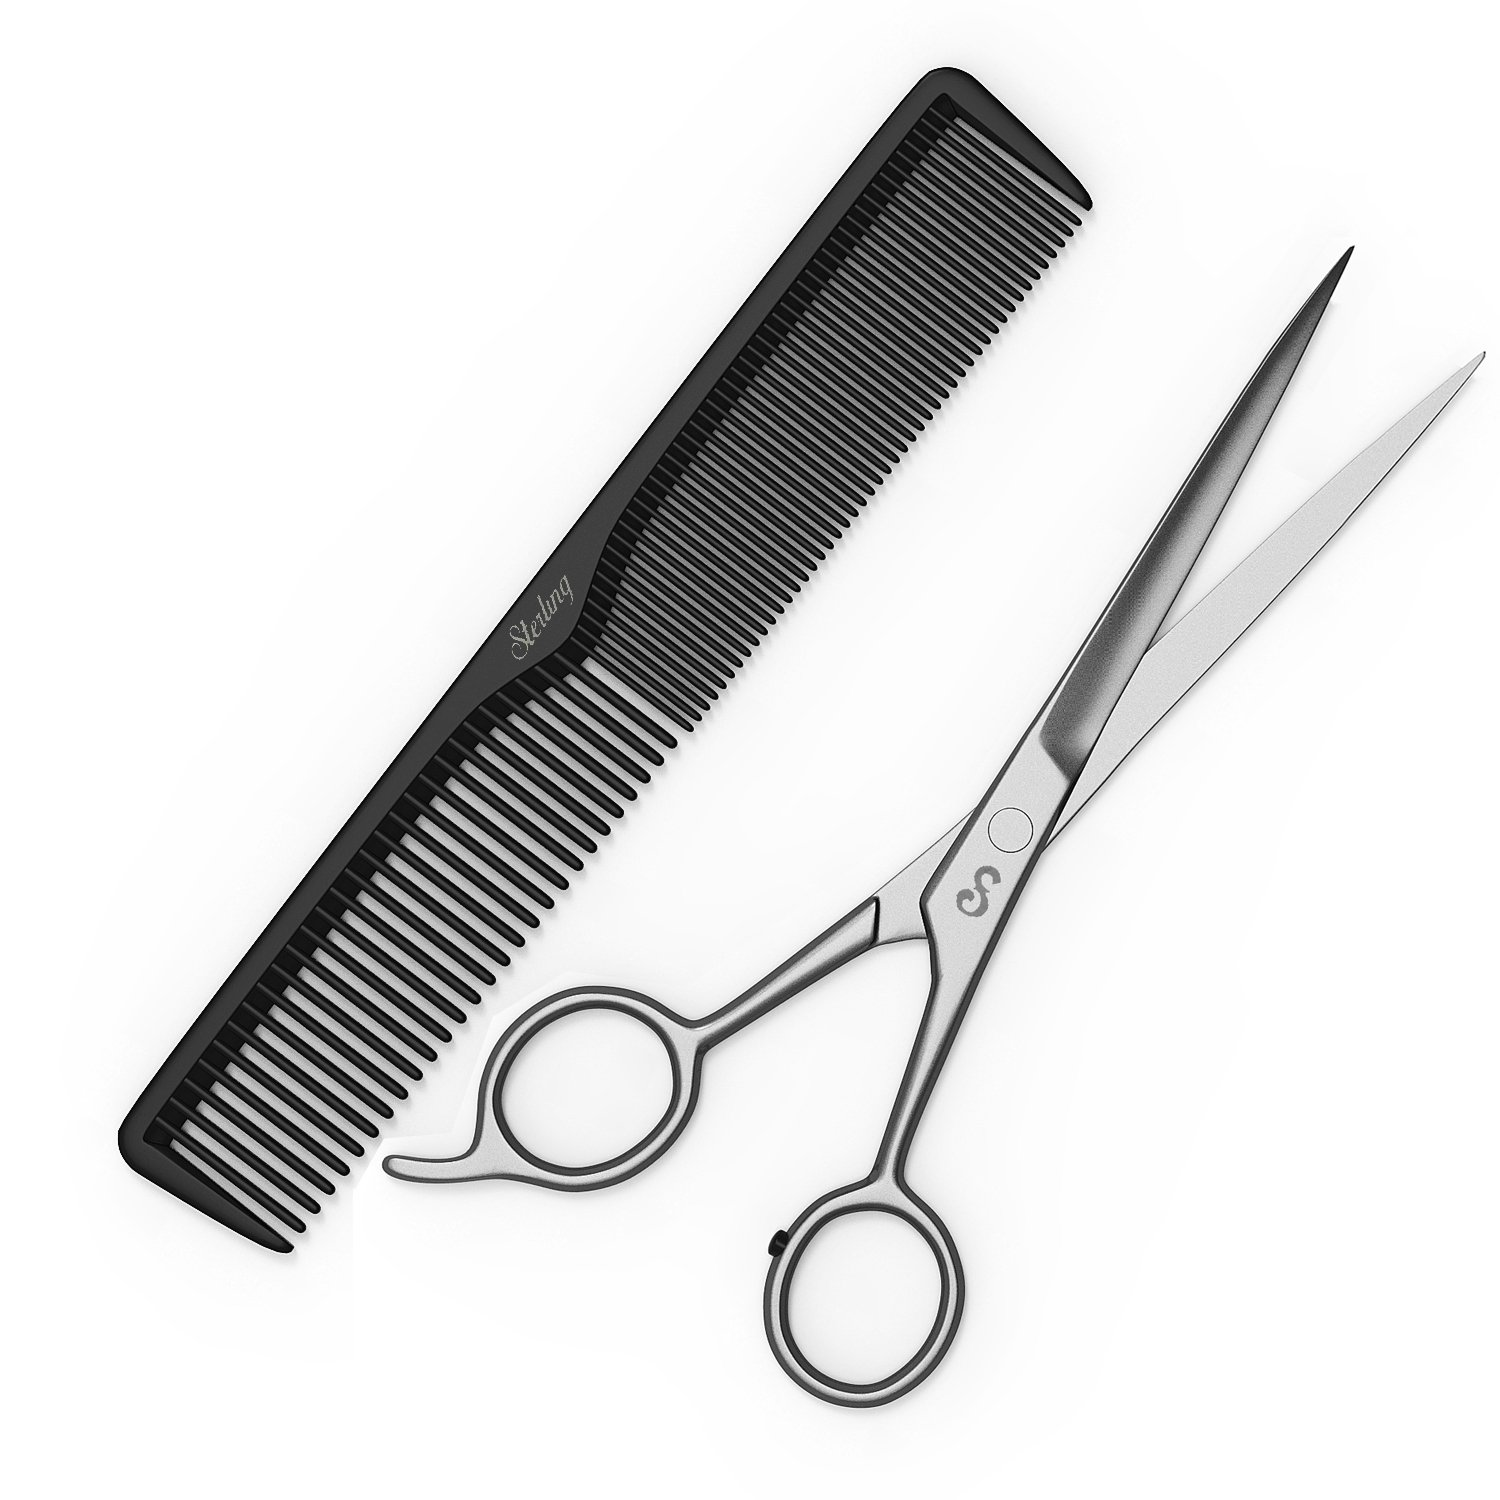 Sterling Beauty Tools 7 Inch Hair Cutting Scissors Made